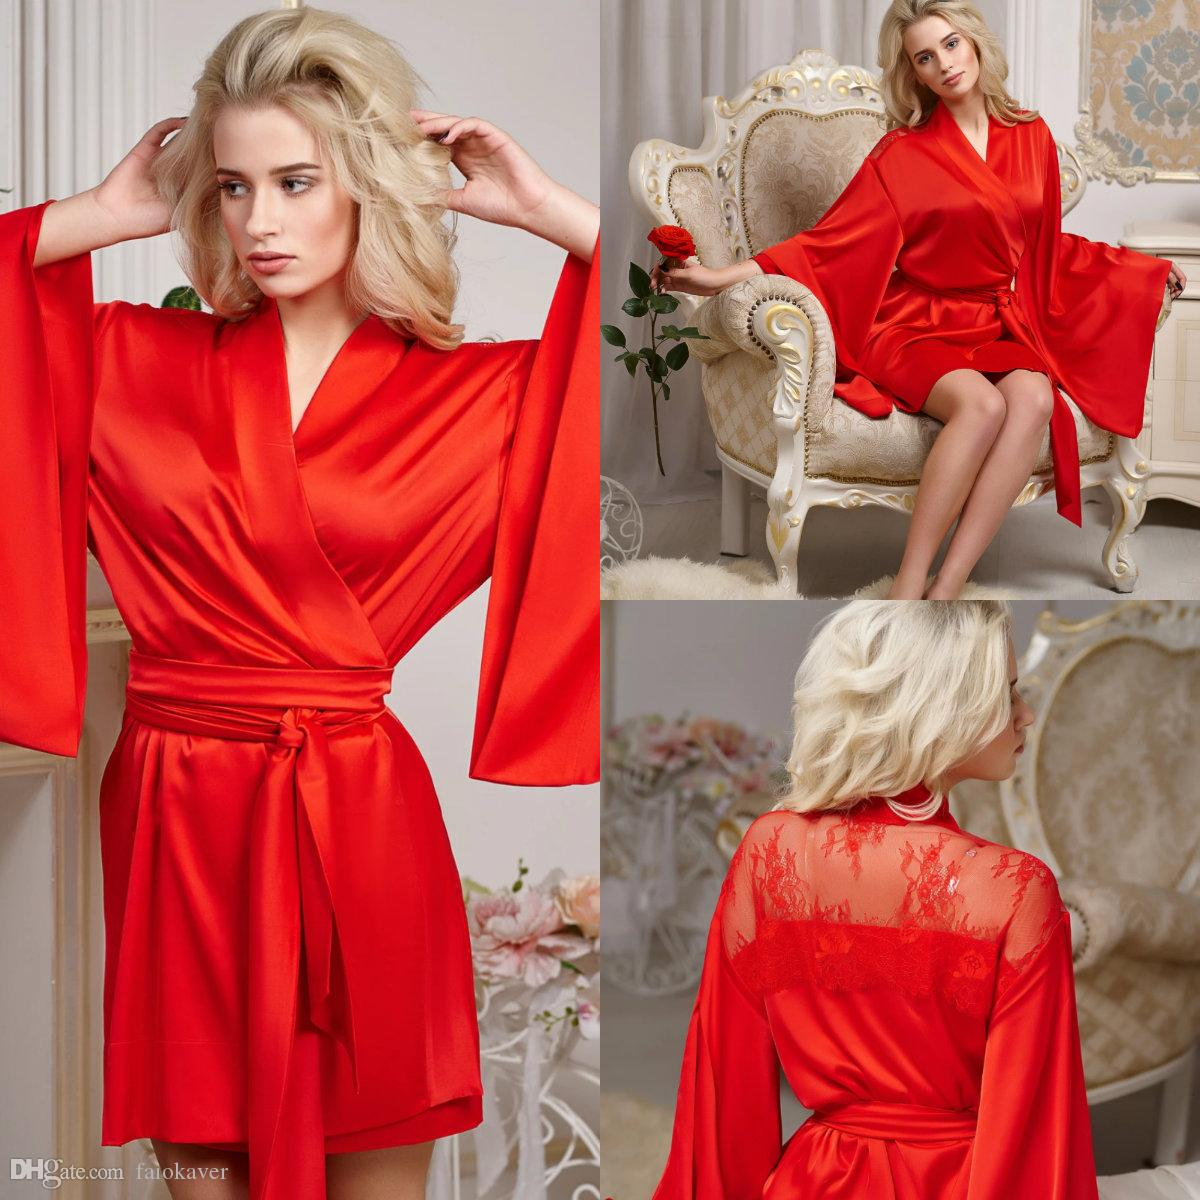 2020 Silk Satin Short Bathrobes For Women Red Lace A Line Sleepwear Night Robe Bathrobes Wedding Bride Robes Dressing Gown Pajamas Autumn Bridesmaid Dresses B2 Bridesmaid Dresses From Faiokaver 46 08 Dhgate Com